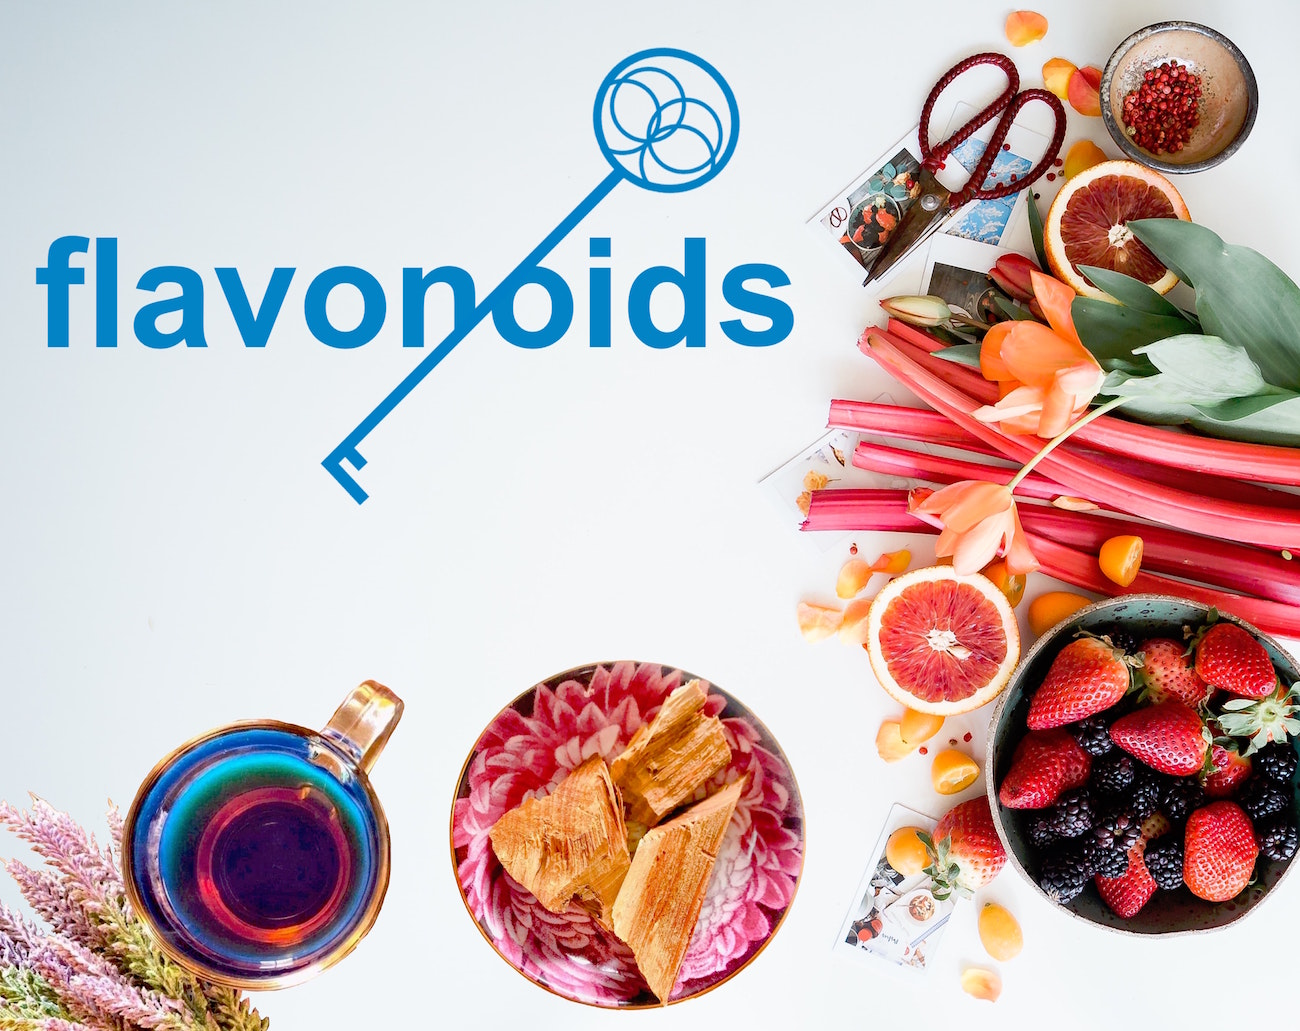 palo azul and fruits with flavonoids